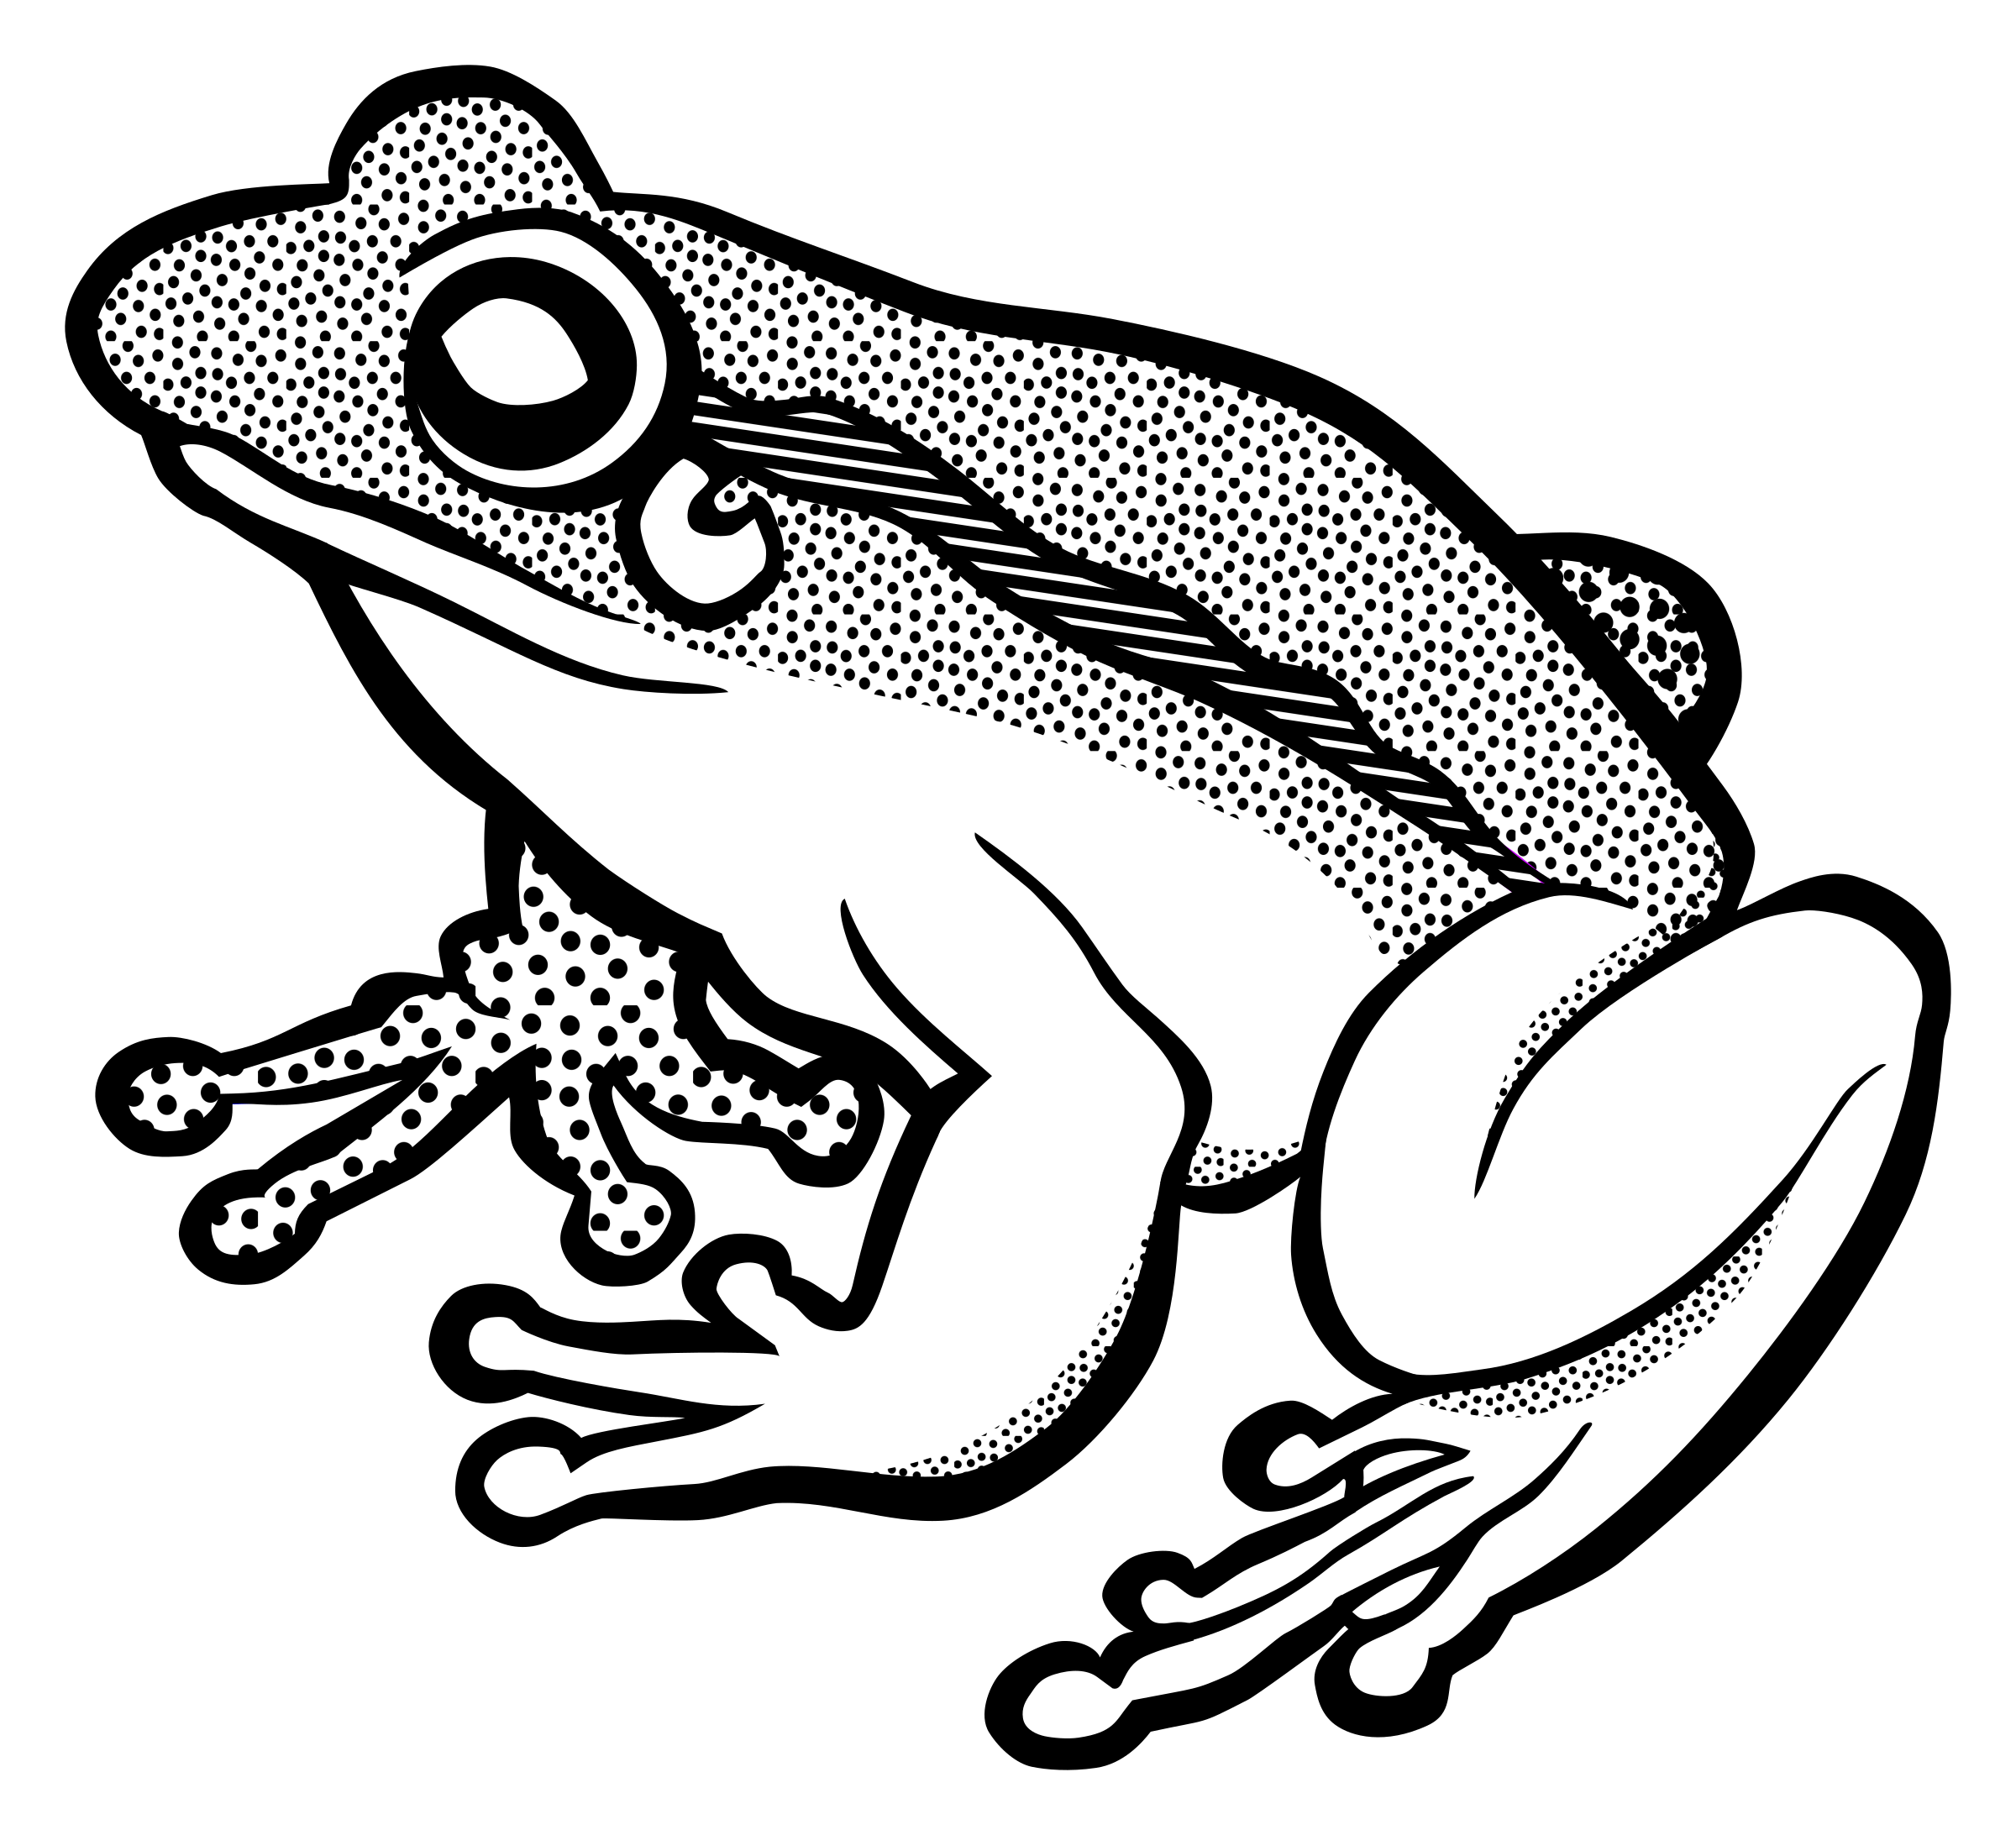 Frog clipart tree frog. Line art collection lineart